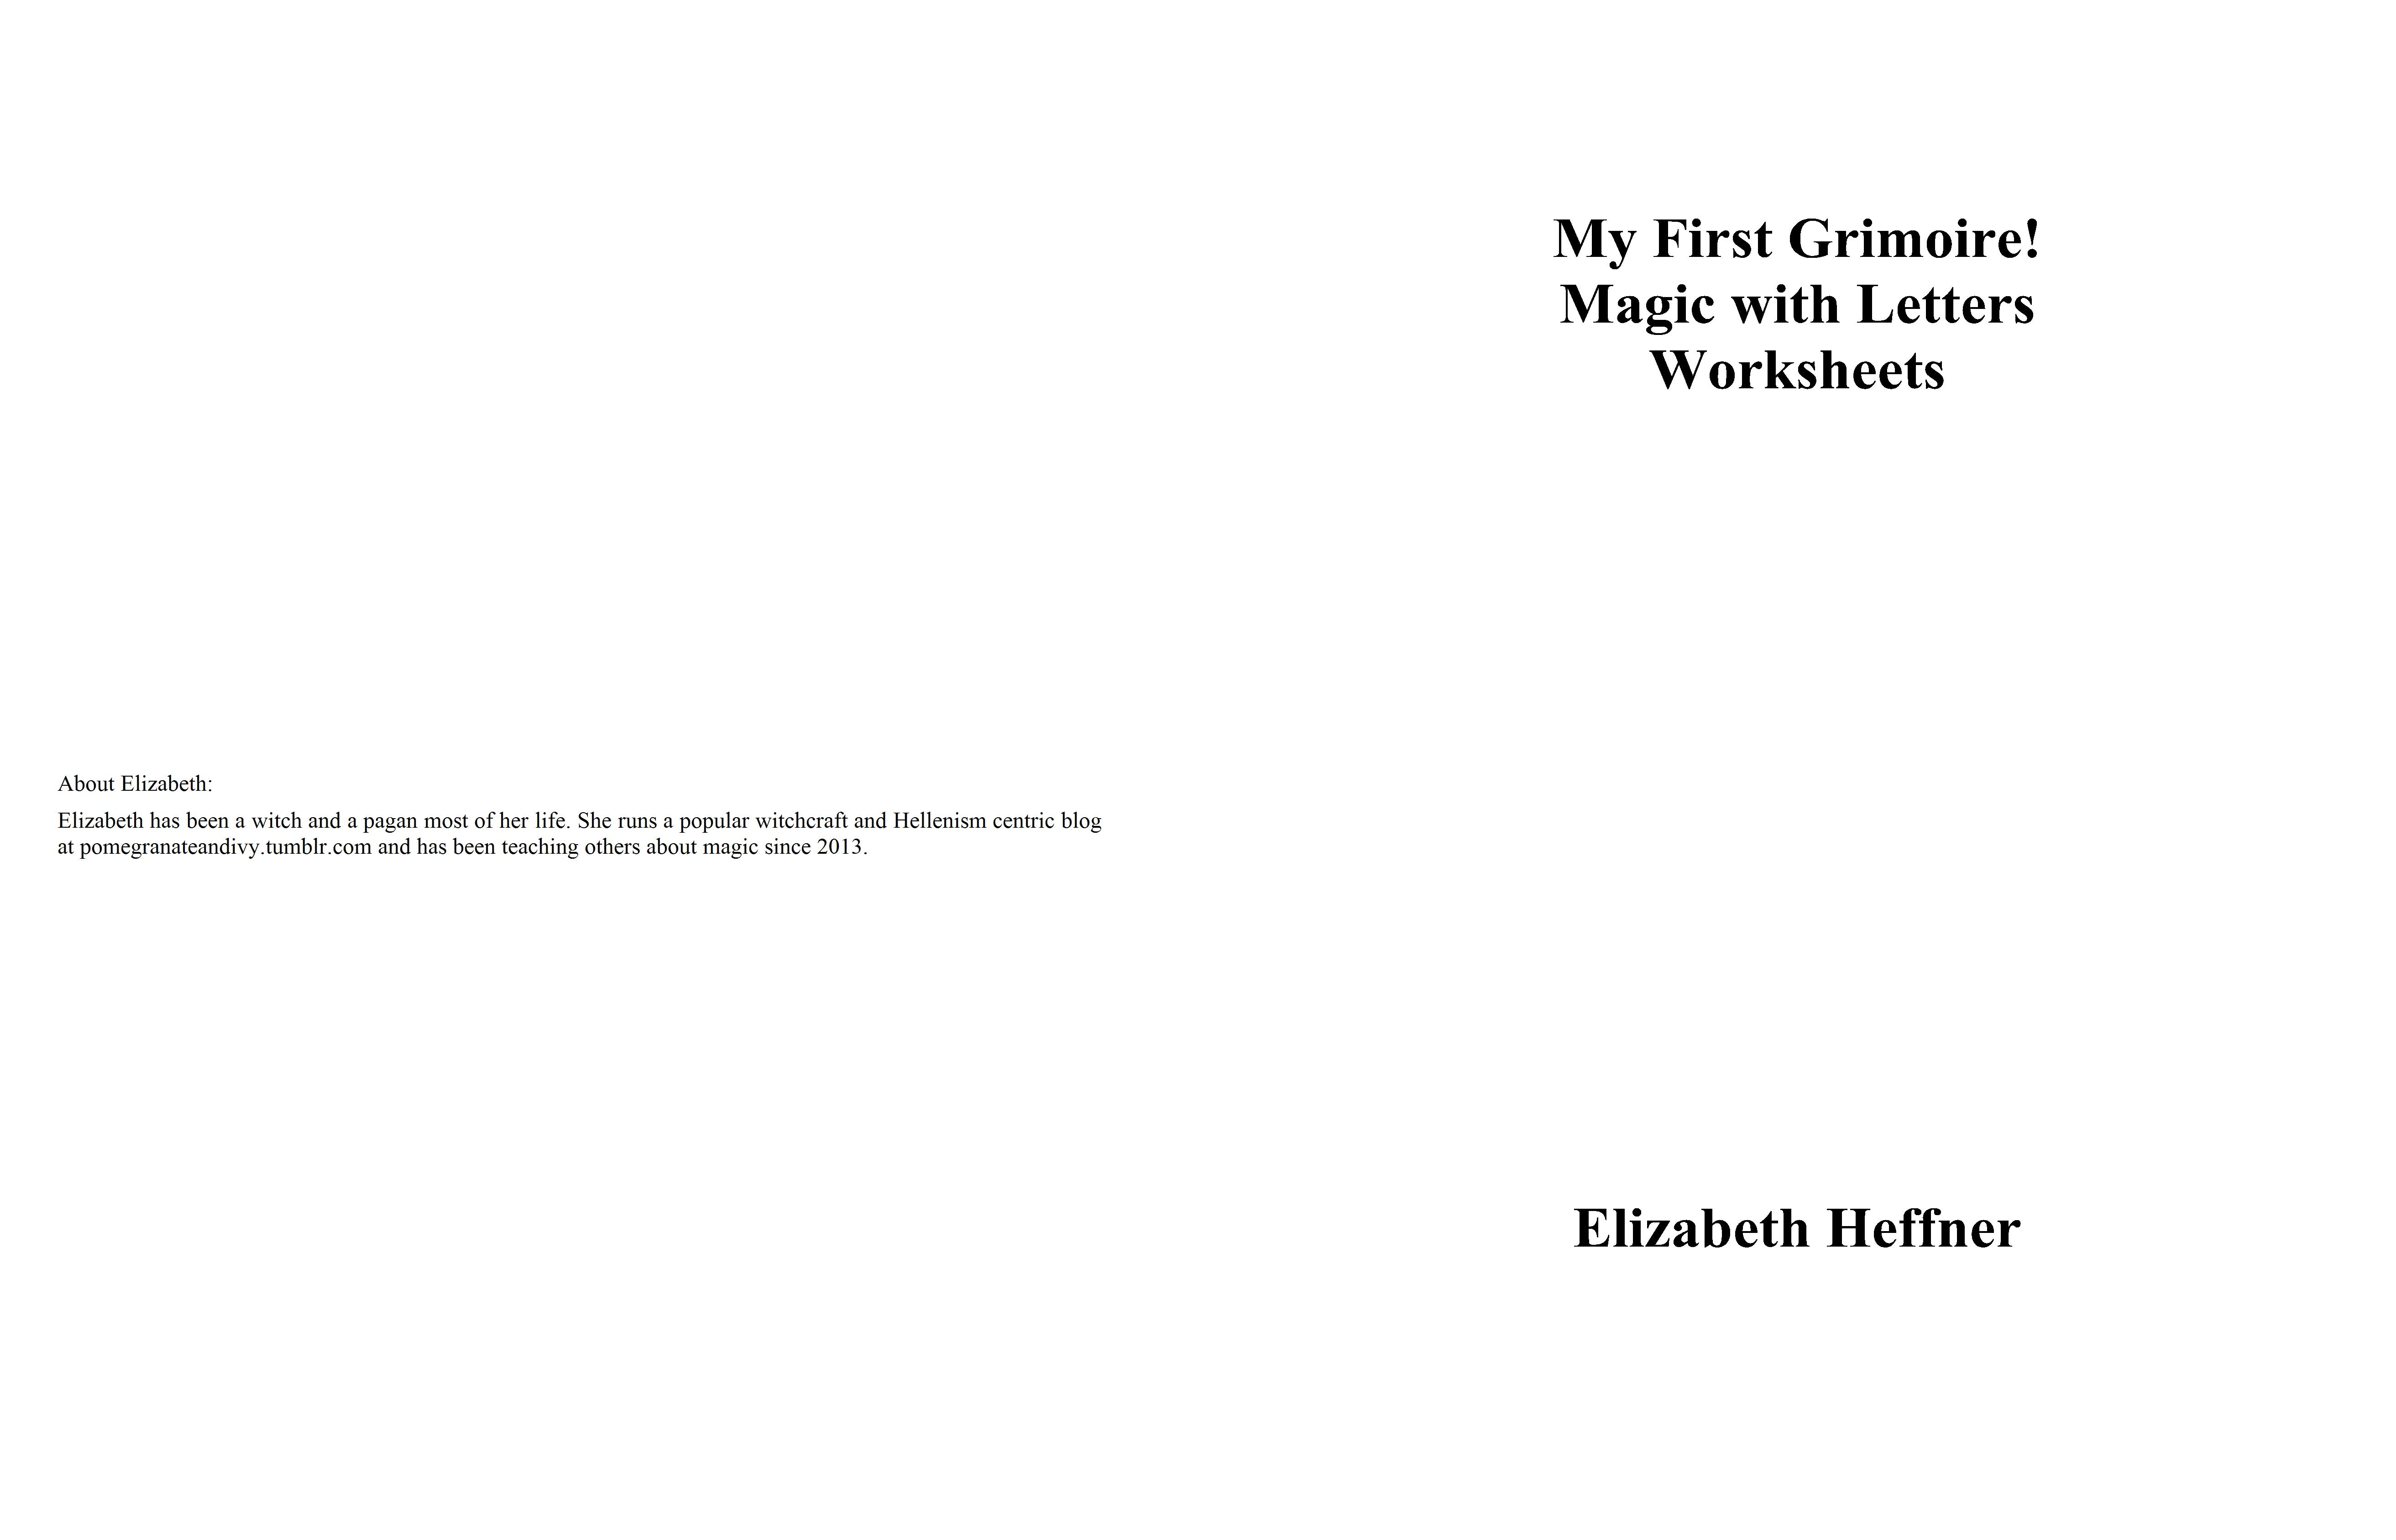 My First Grimoire Magic With Letters Worksheets By